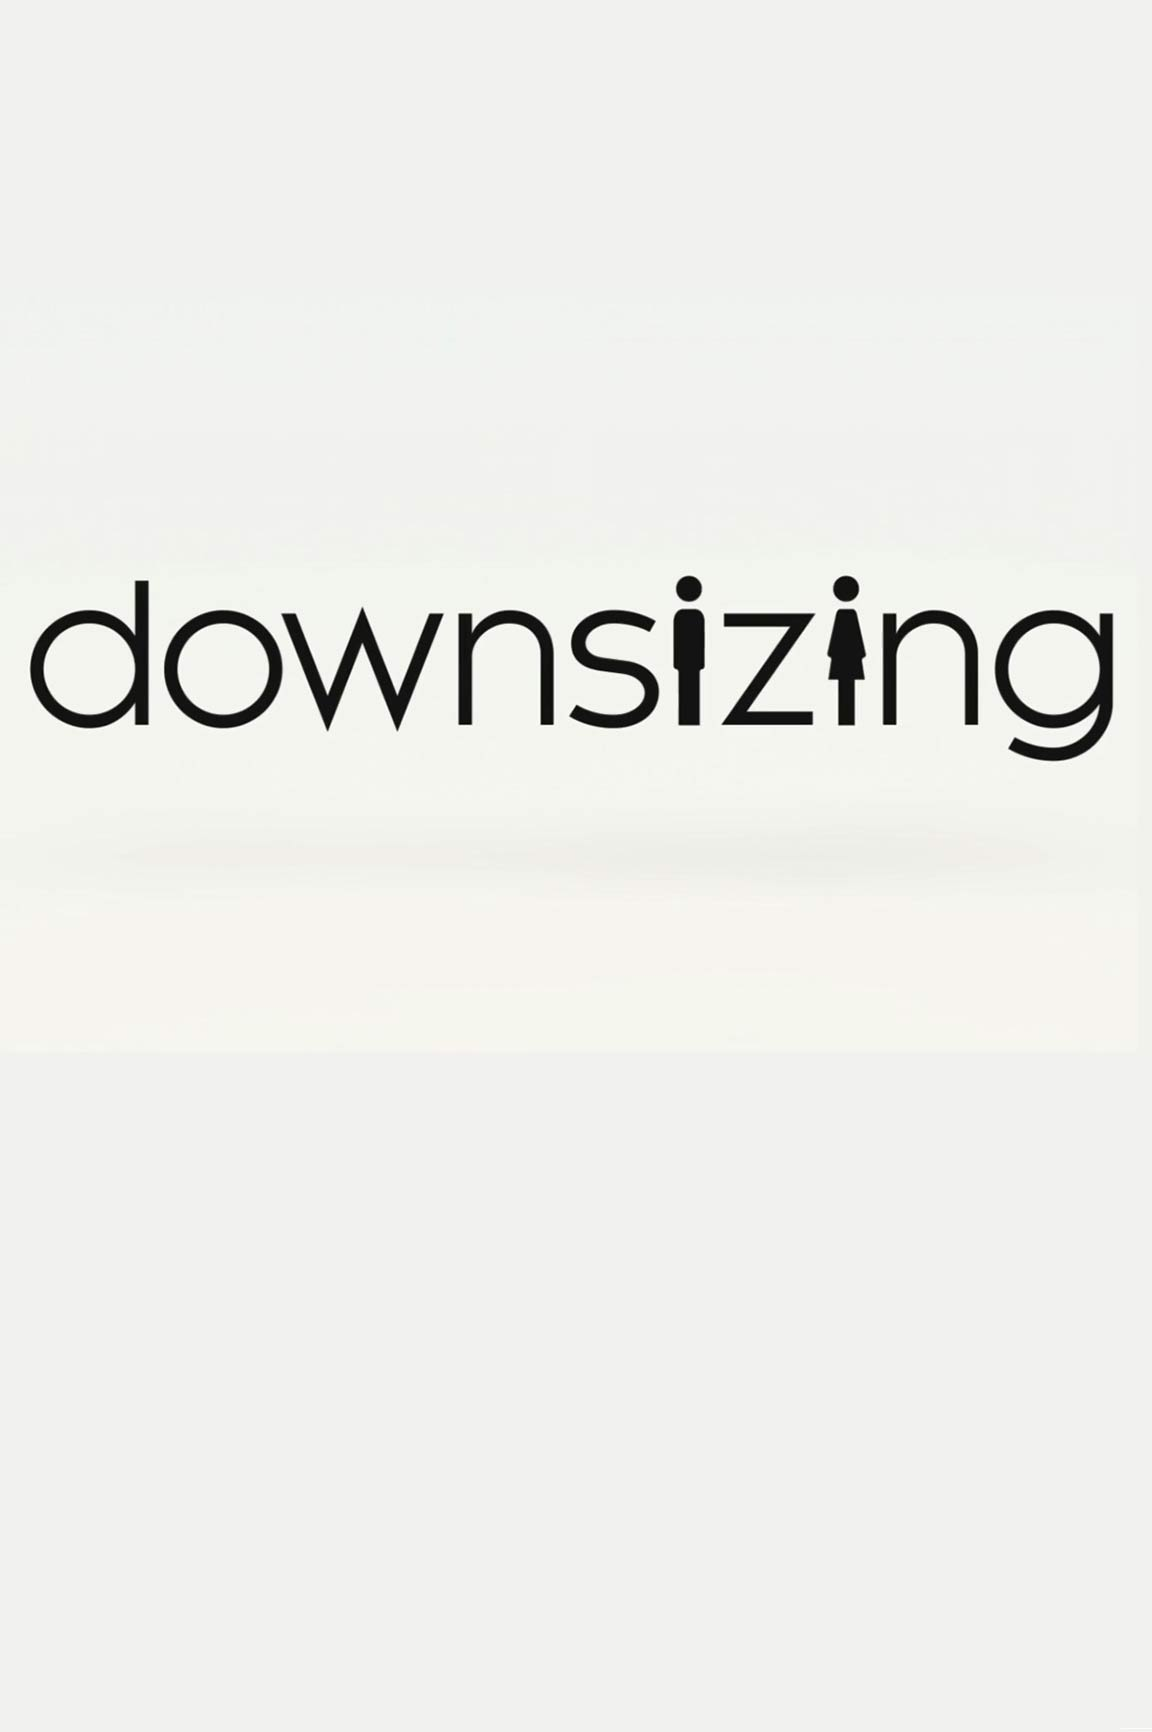 Downsizing 2017 Poster 1 Trailer Addict